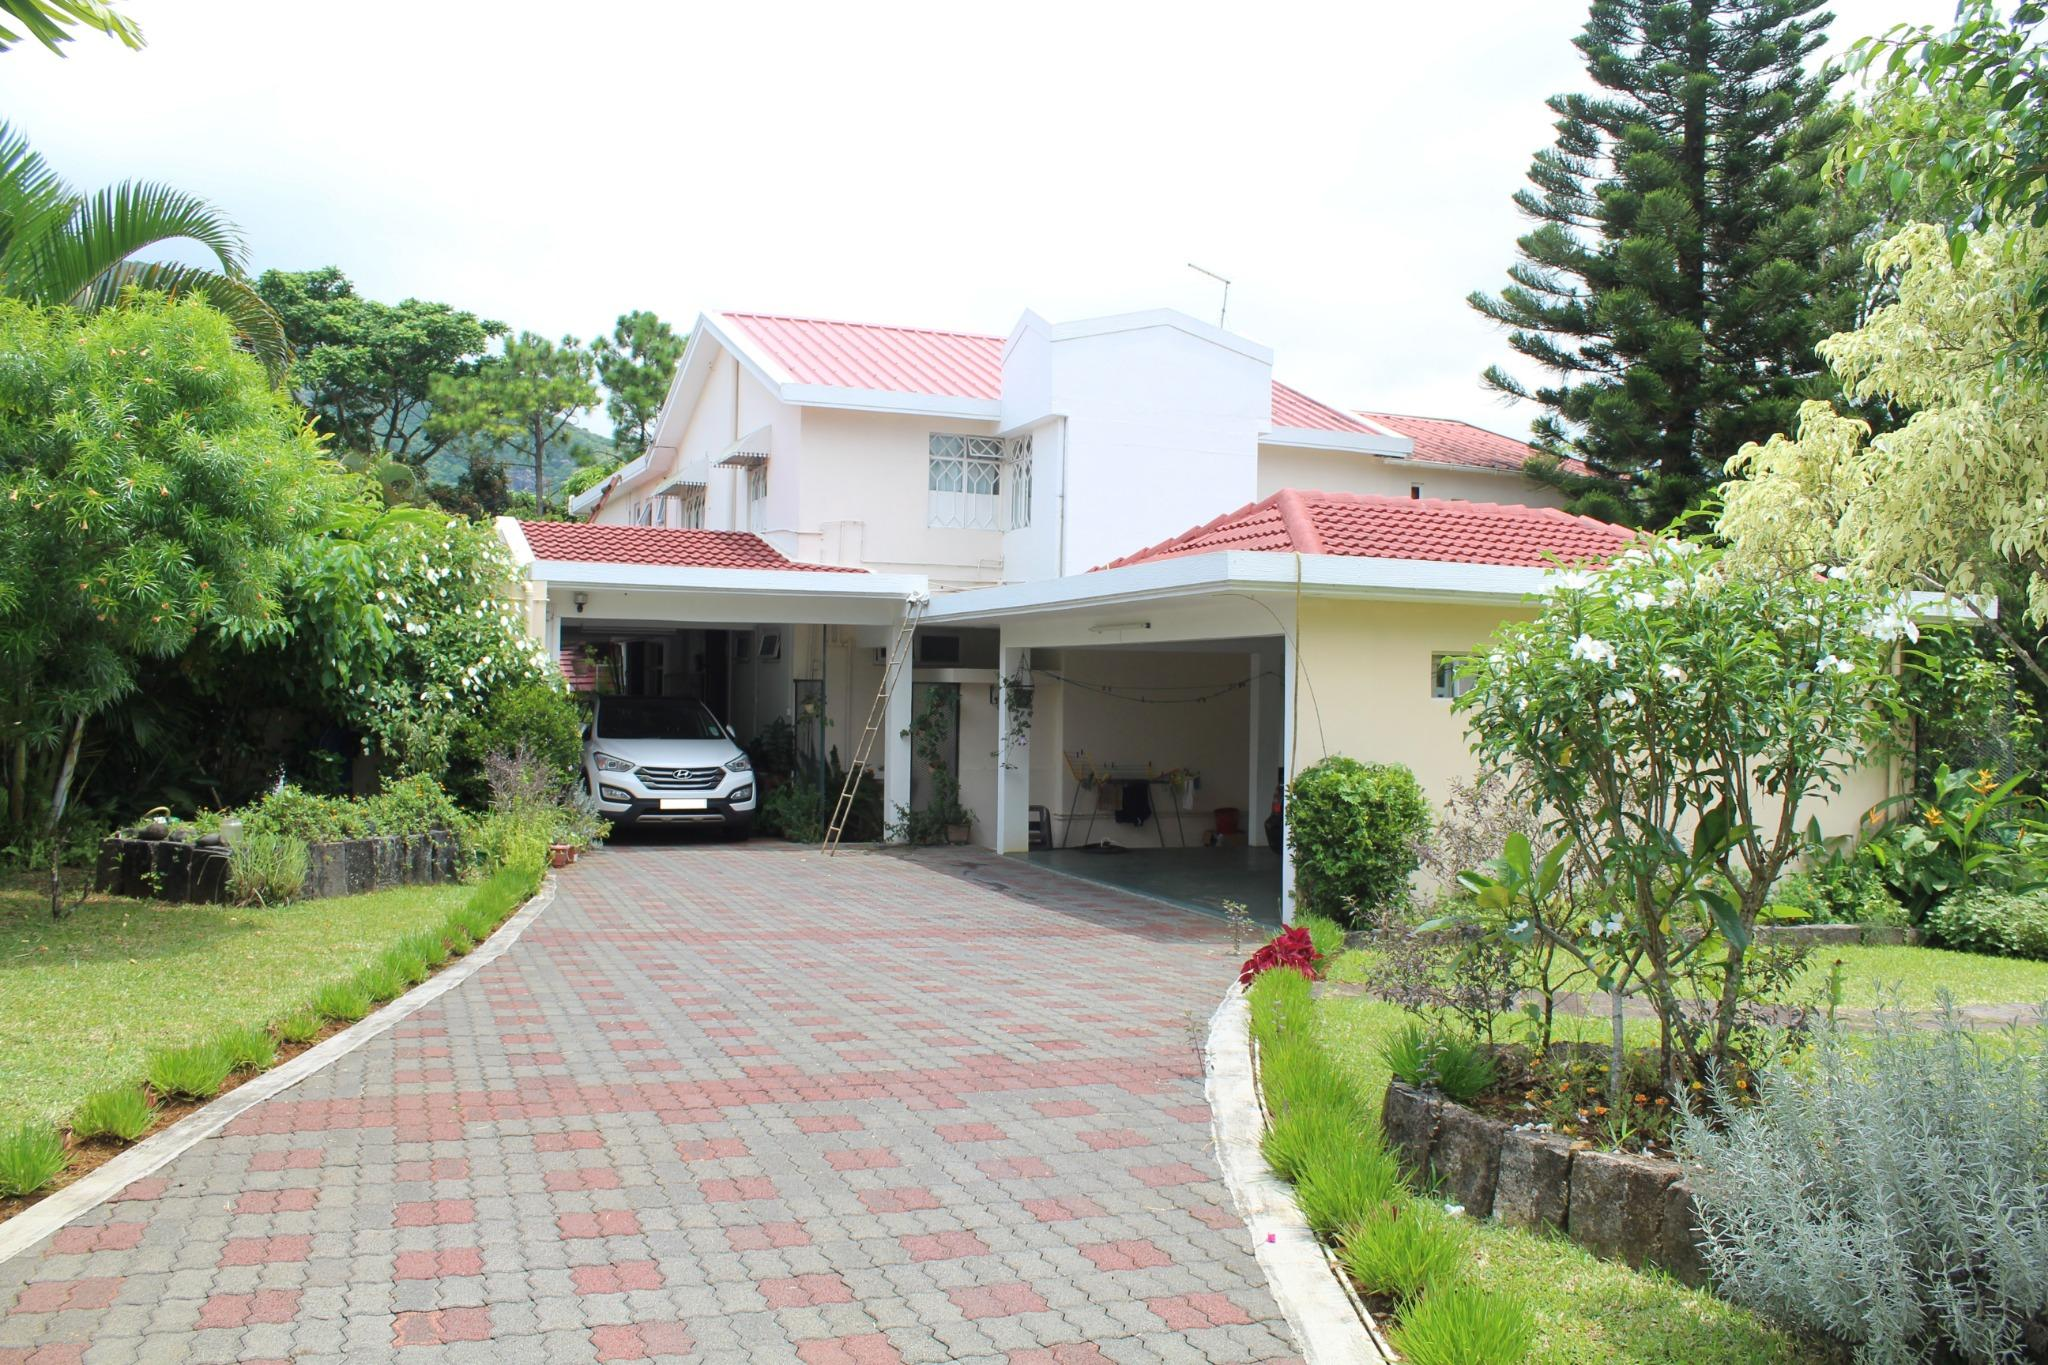 FOR SALE – Unfurnished house of 690 m2 and 1 small independent apartment at St Pierre, Moka.